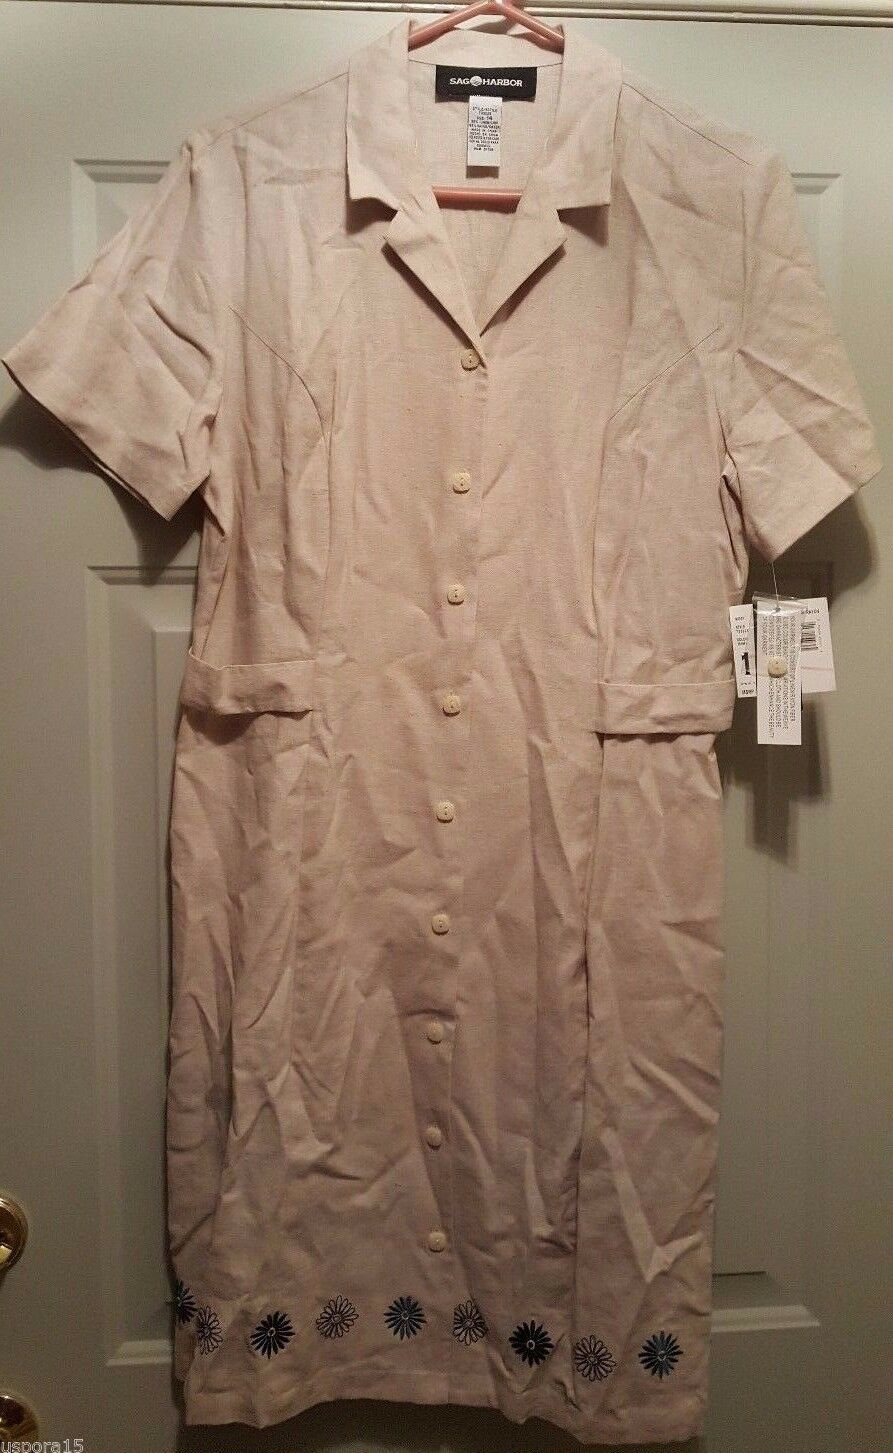 Sag Harbor NWT Womens 55% Linen Brown bluee Floral Button Front Dress Size 14